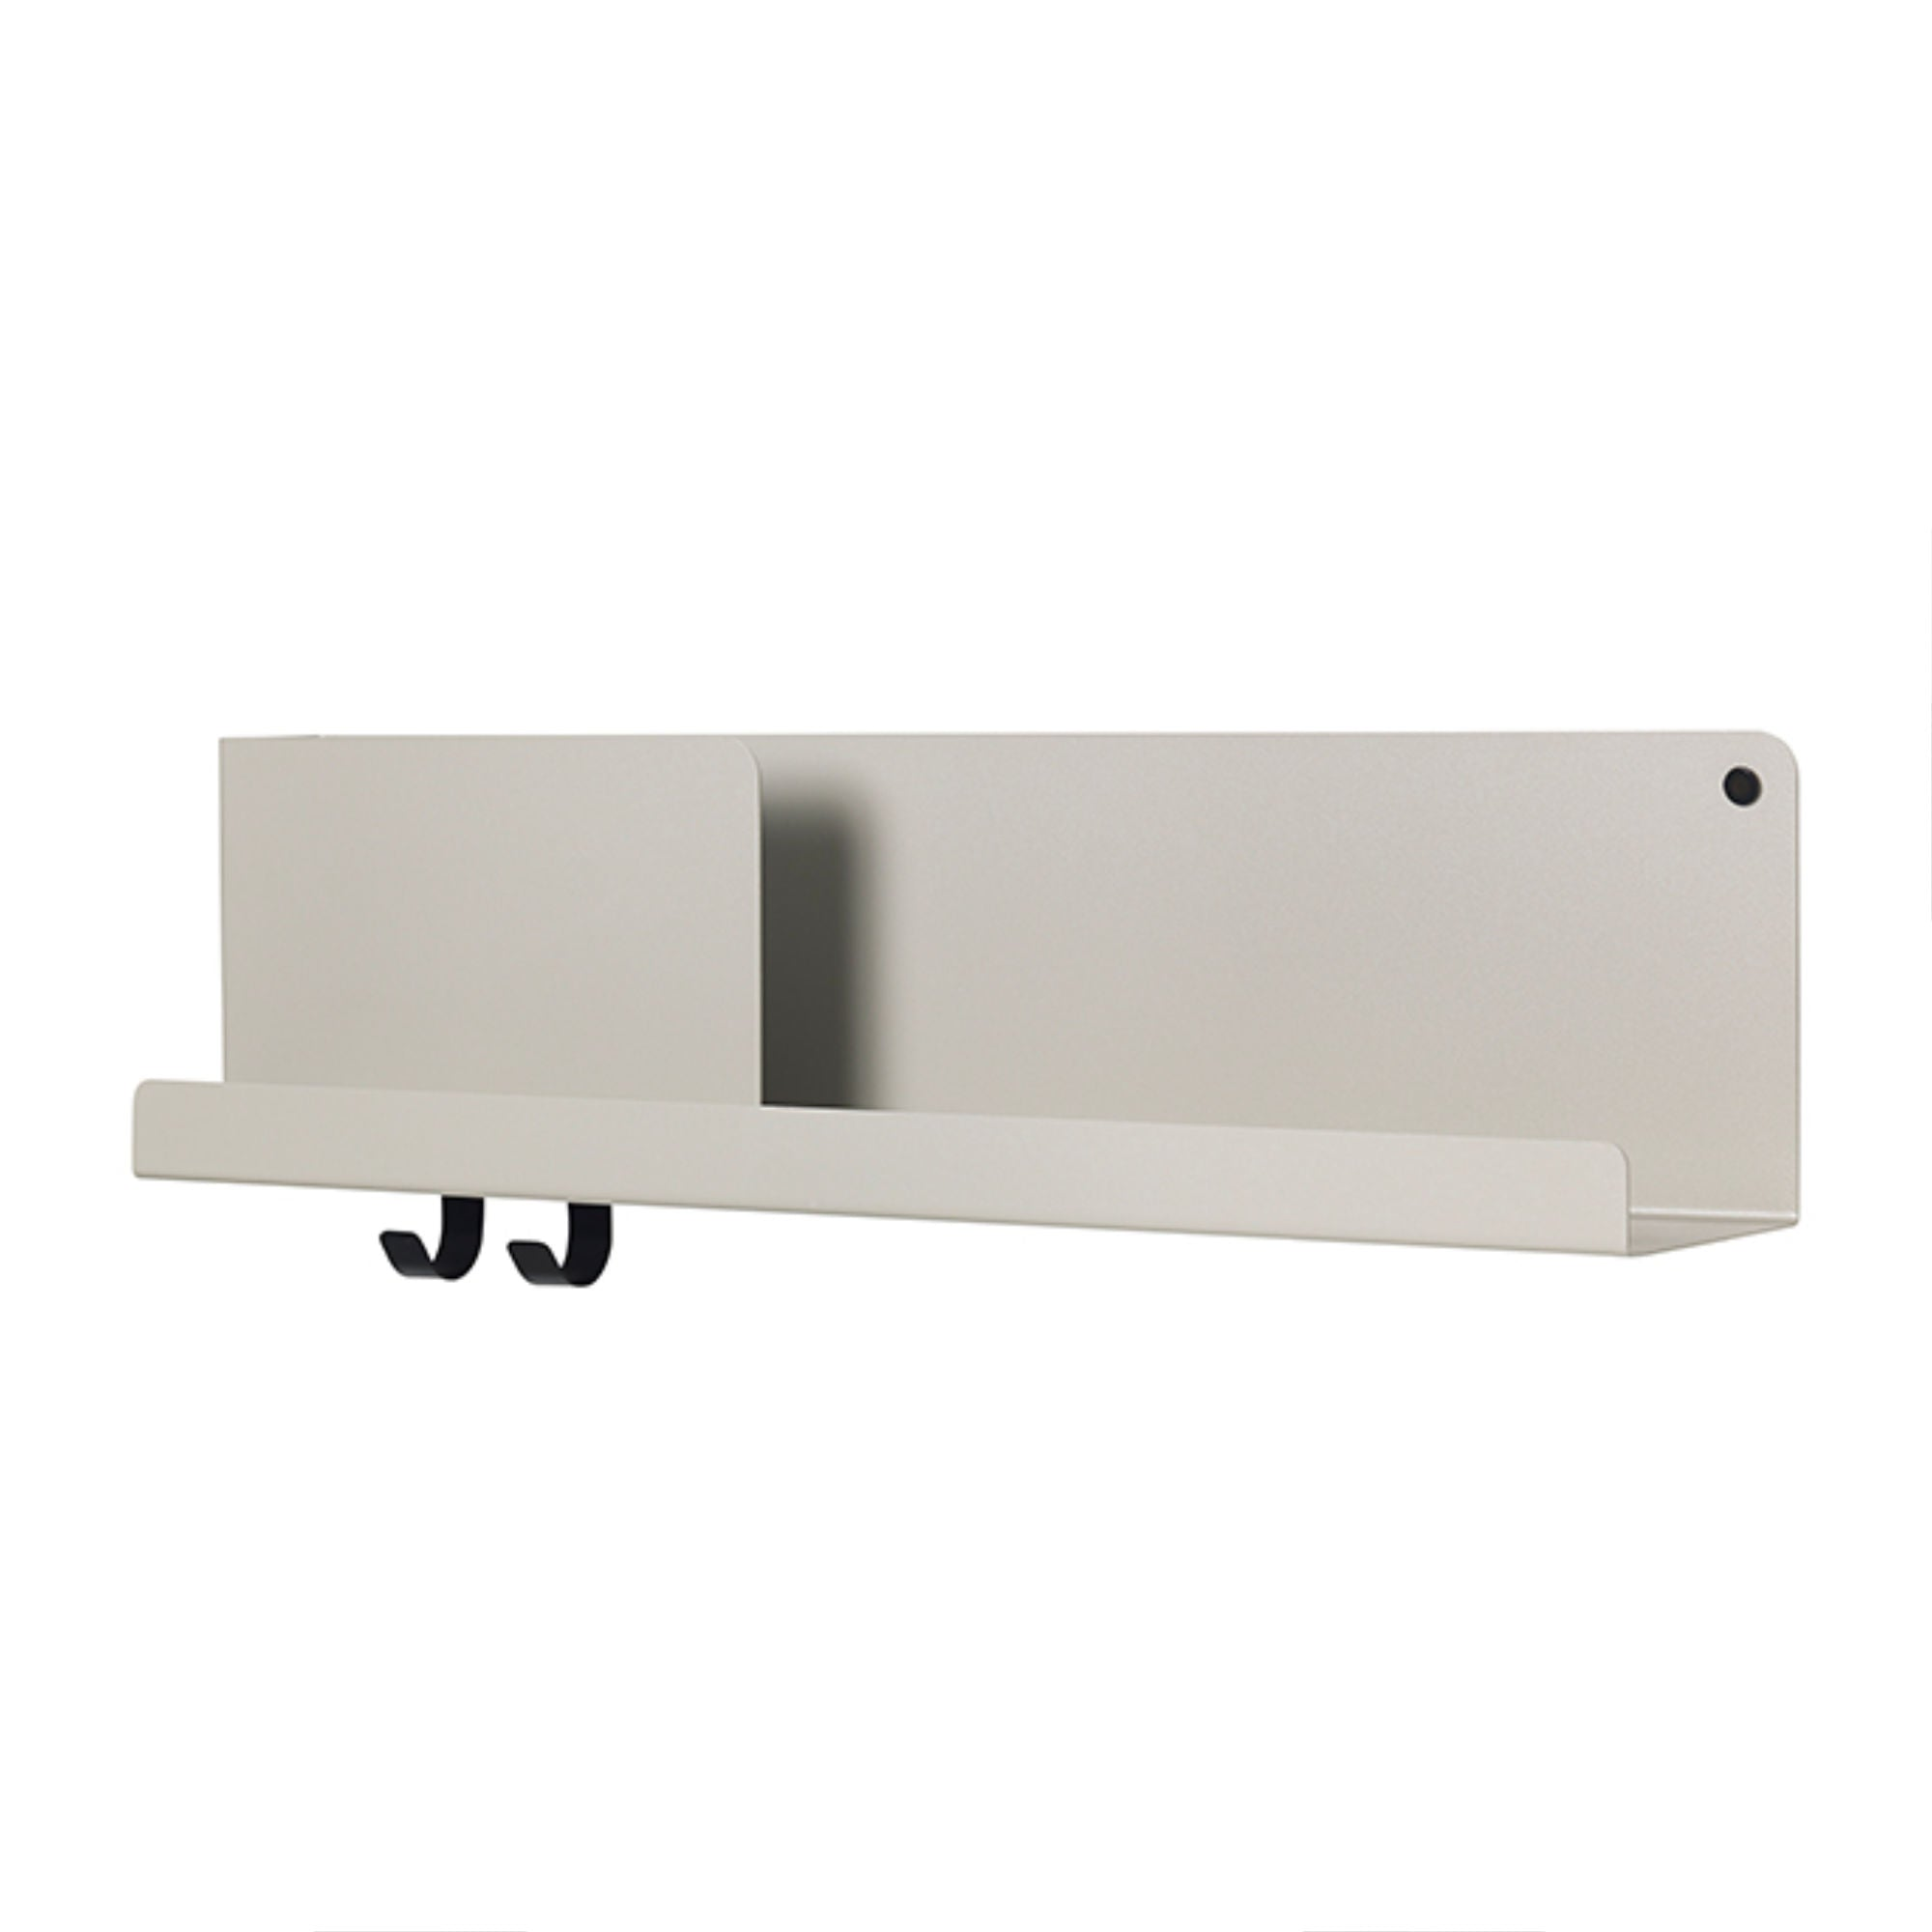 Muuto Folded Shelves 63x16,5cm , Grey